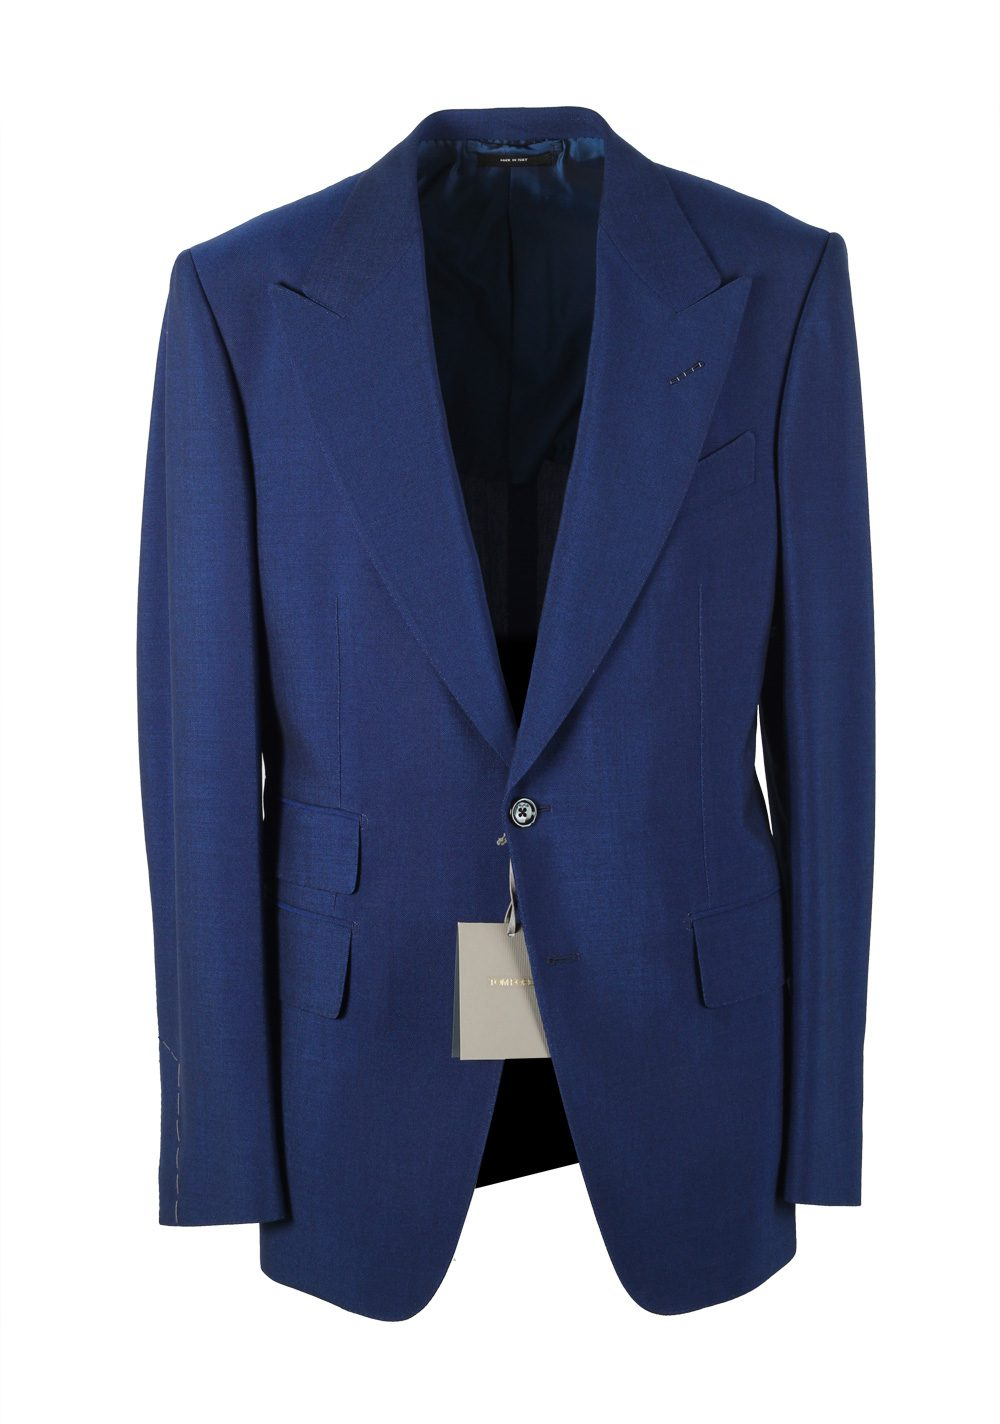 TOM FORD Shelton Blue Suit Size 50 / 40R U.S. In Mohair | Costume Limité